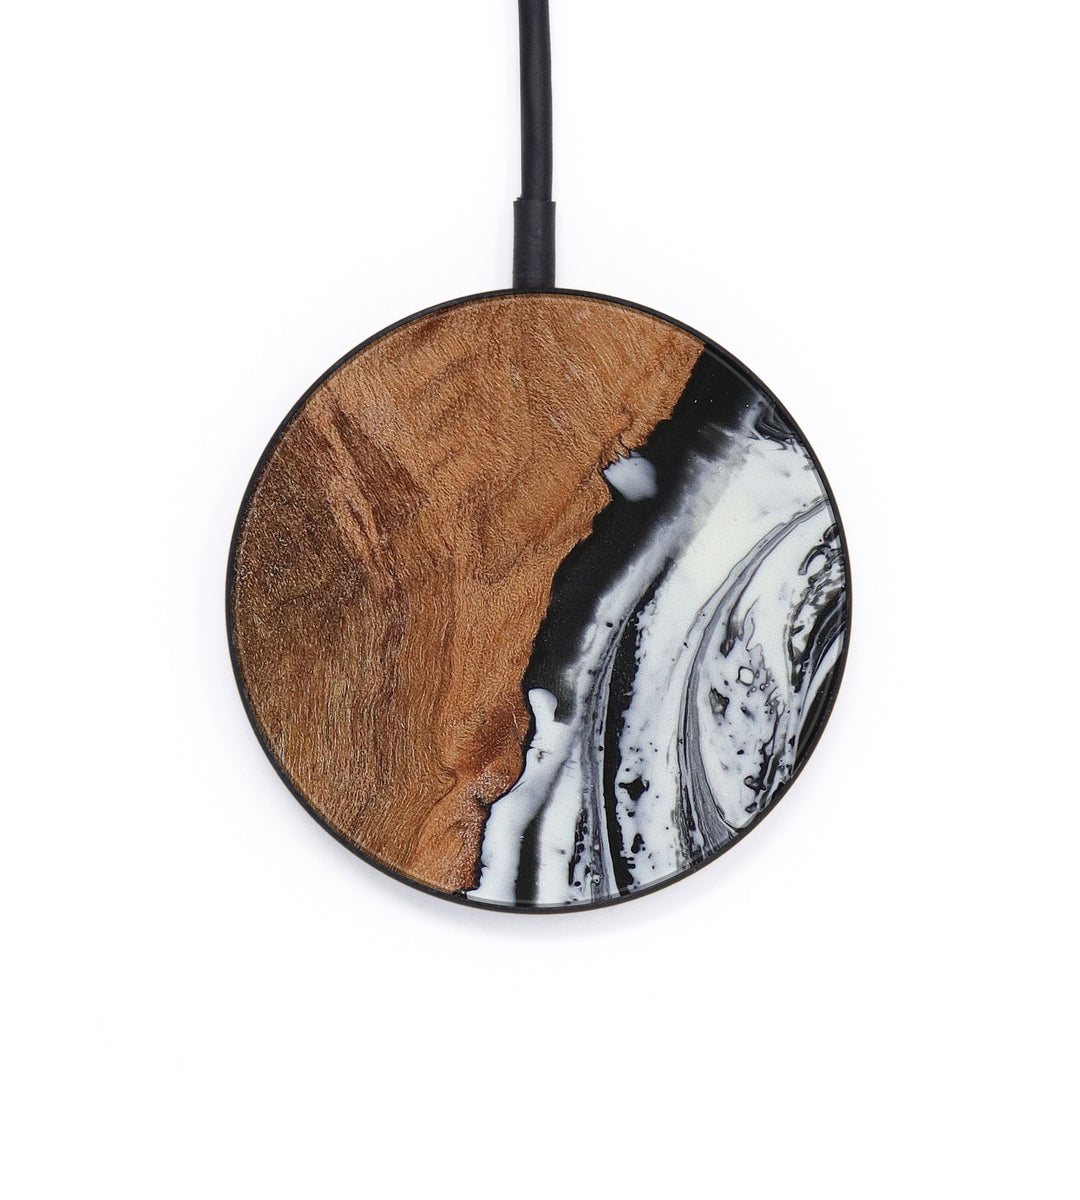 Circle Wood+Resin Wireless Charger - Eline (Black & White, 393447)